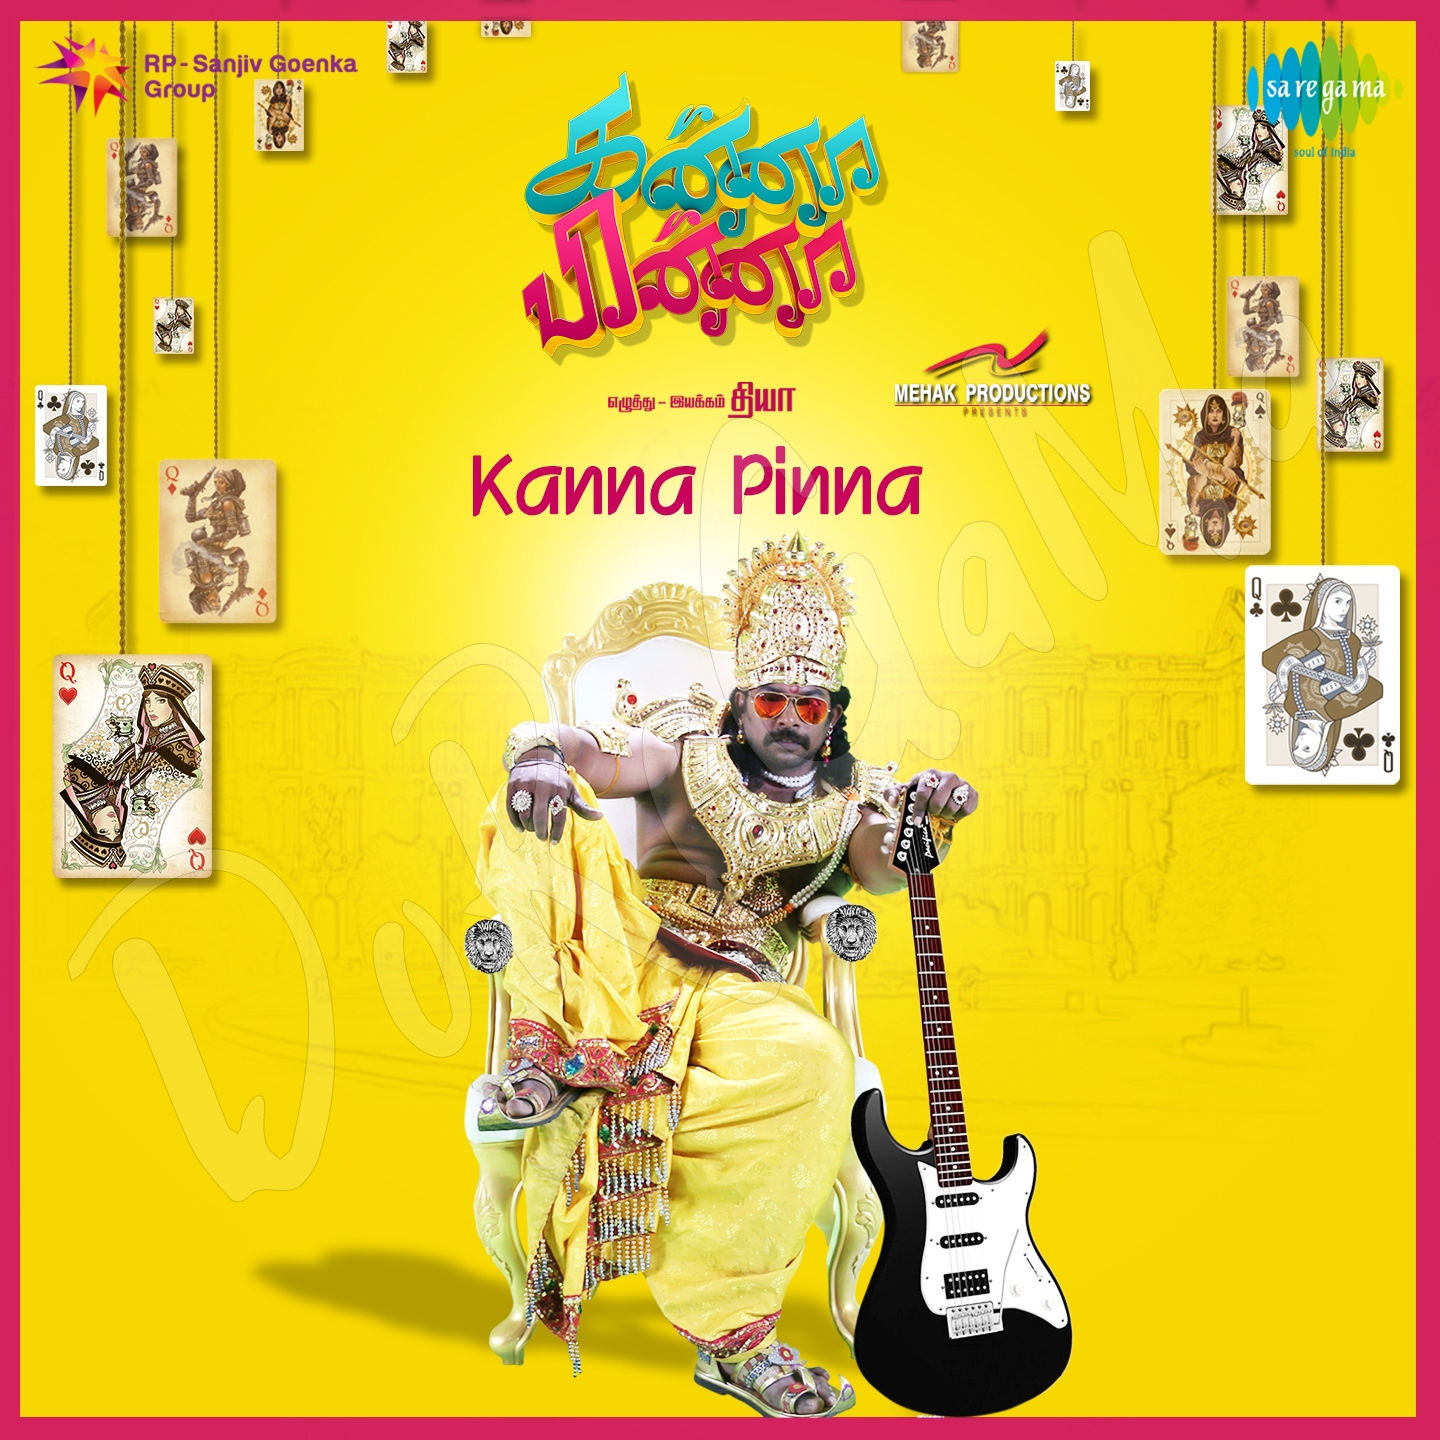 Kanna Pinna 2016 Original CD Front Cover Poster Wallpaper HD